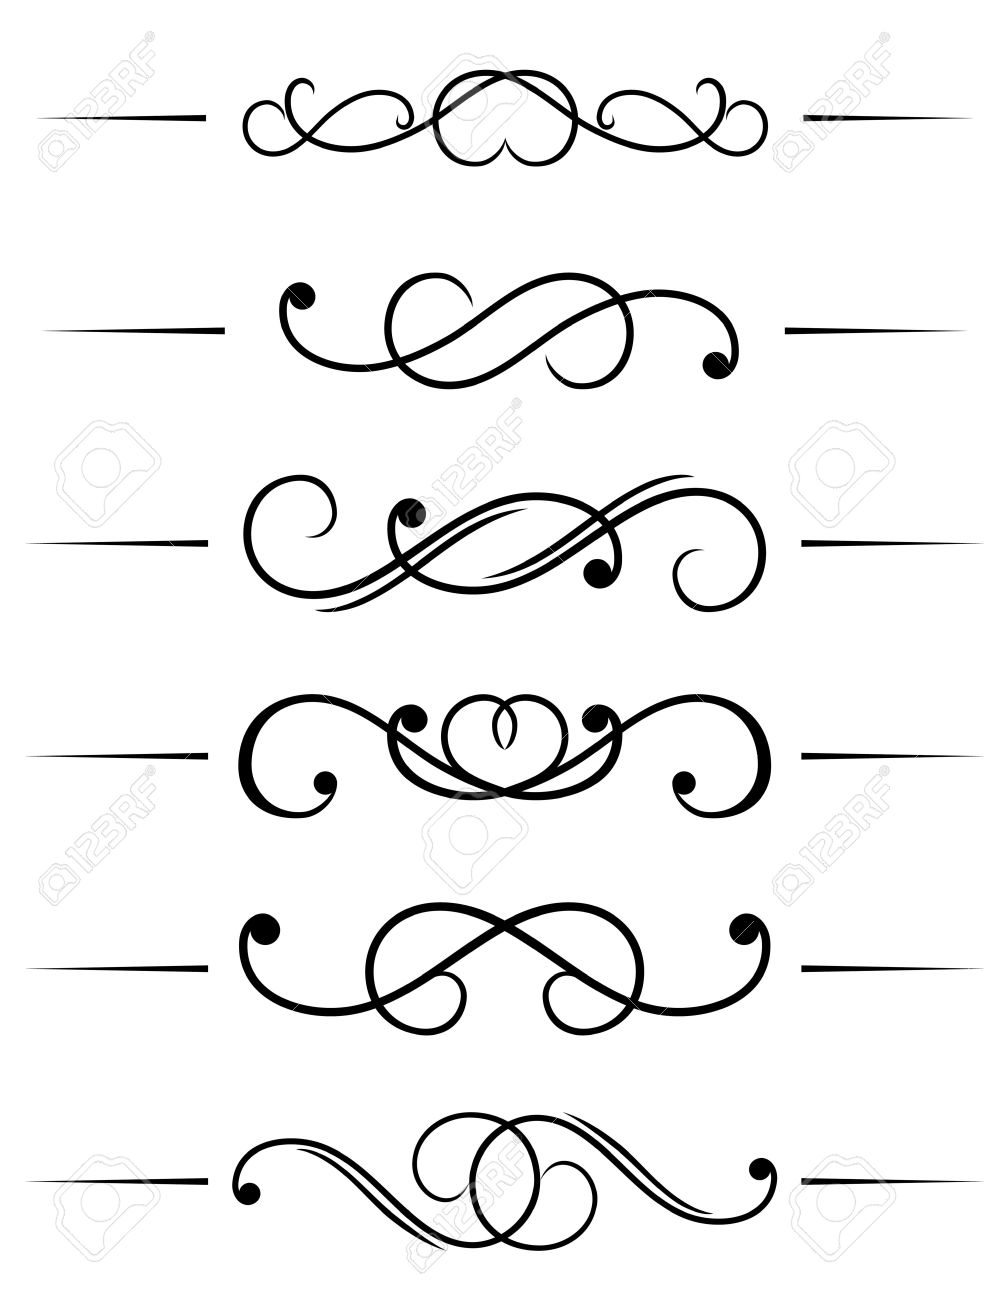 Swirl Elements And Monograms For Design And Decorate Stock Vector 6554221